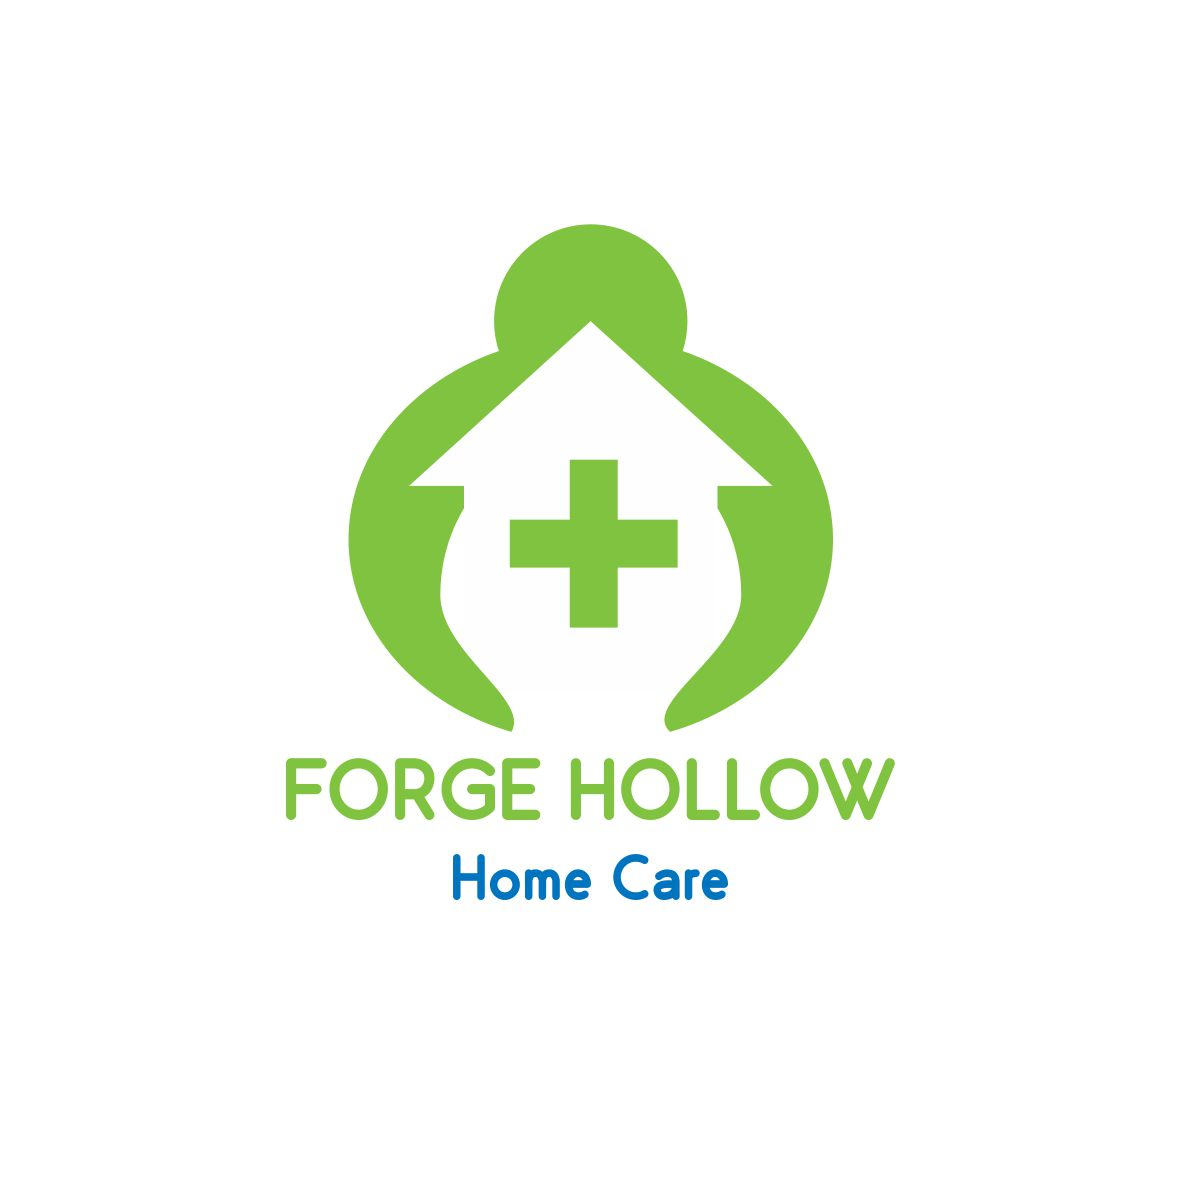 Serious Professional Home Health Care Logo Design For Forge Hollow Home Care By Kentai Ichi